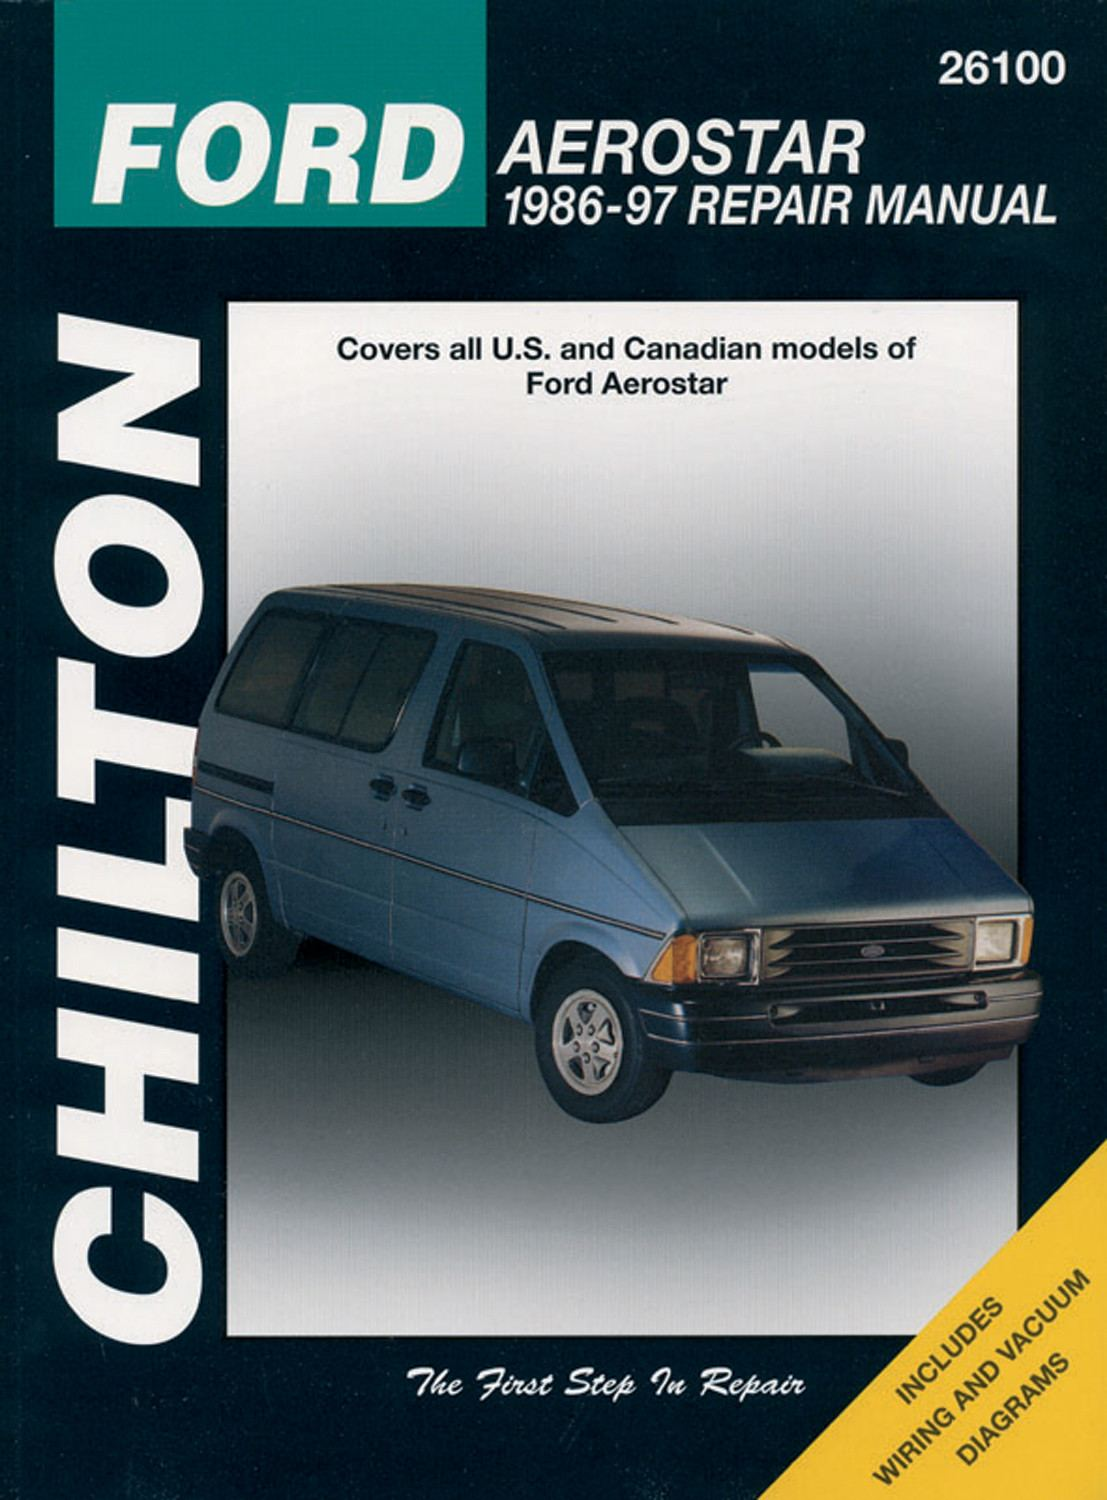 Chilton Book Company Aerostar 85 90 26100 1990 Ford Engine Diagram List Price